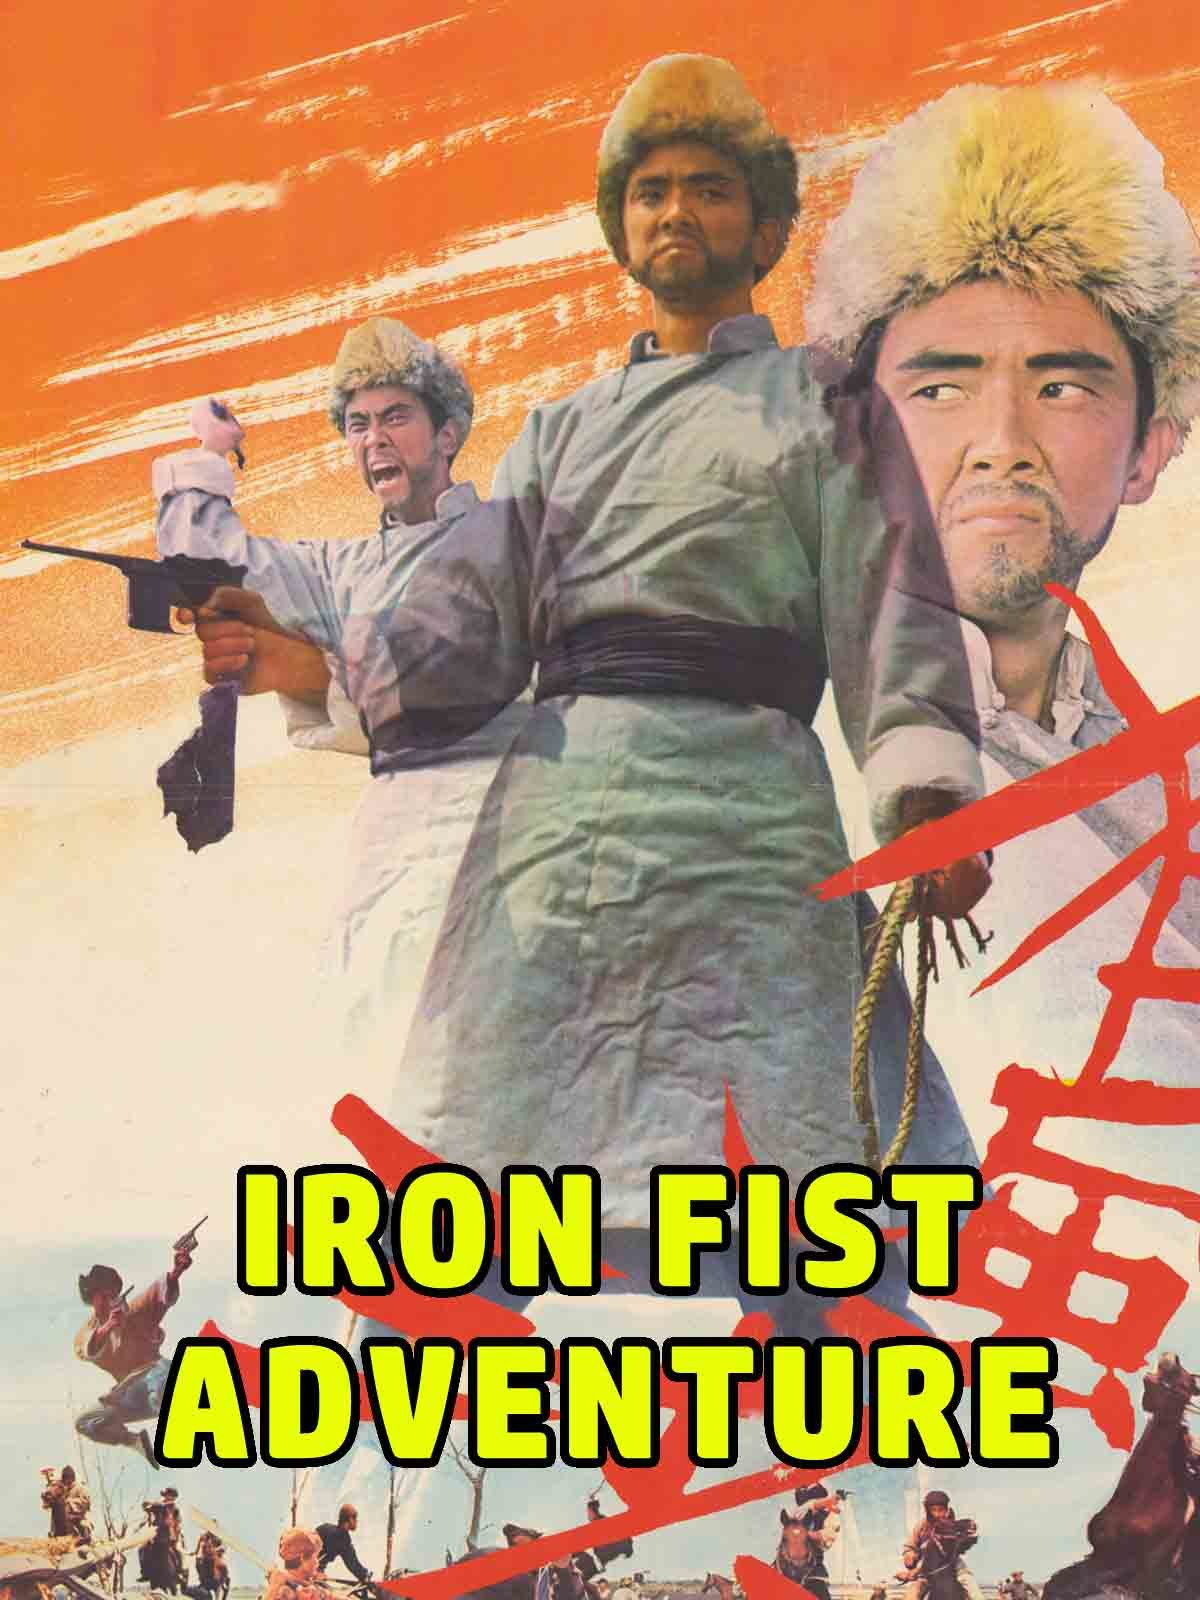 Iron Fist Adventure